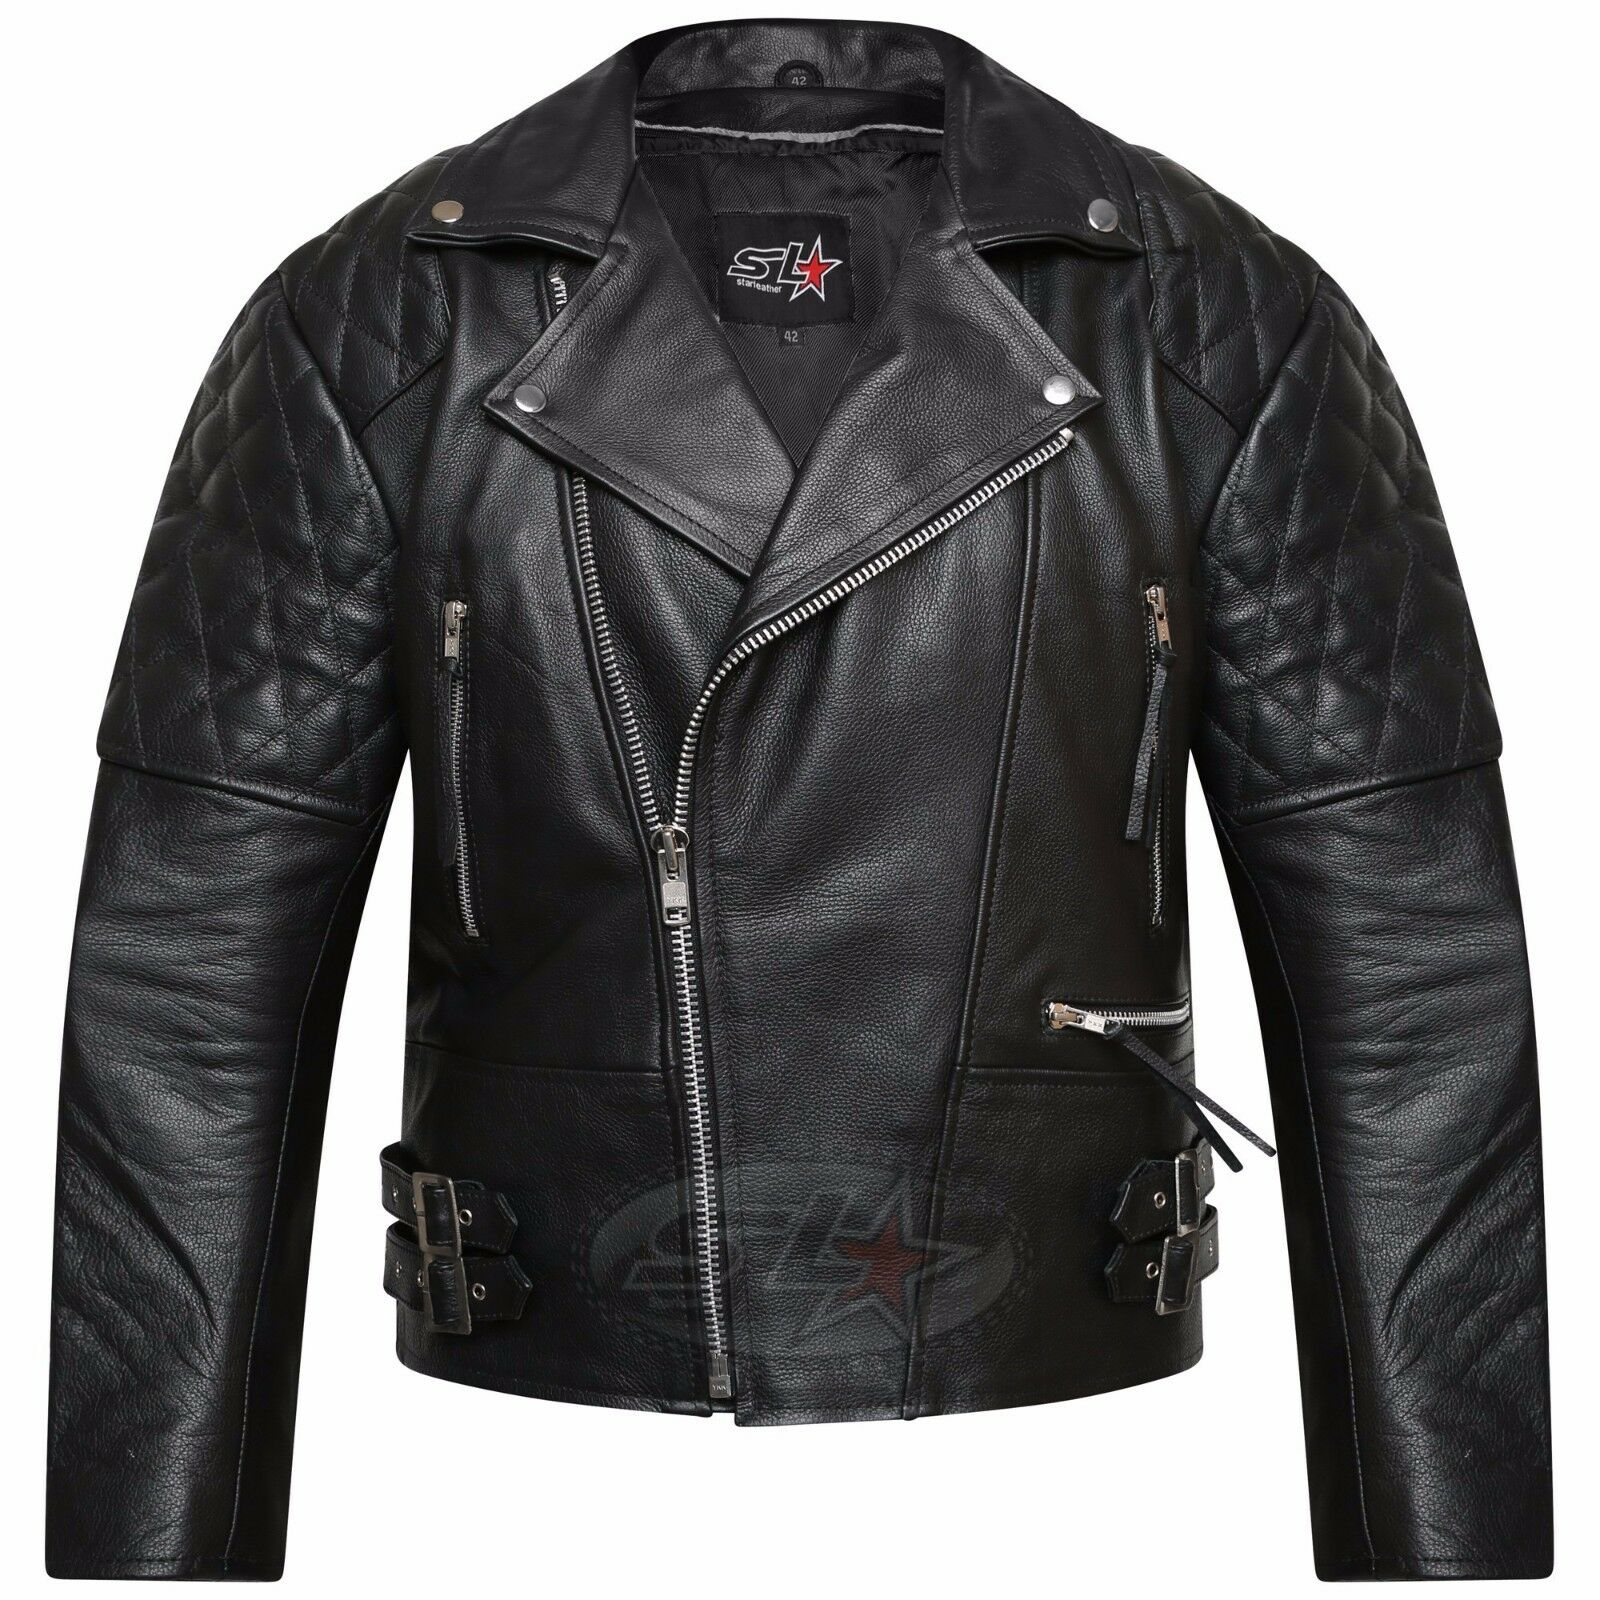 dc2f21fe7011e Details about Men s Real Leather Jacket Motorcycle Vintage Brando Biker  Perfecto Jacket